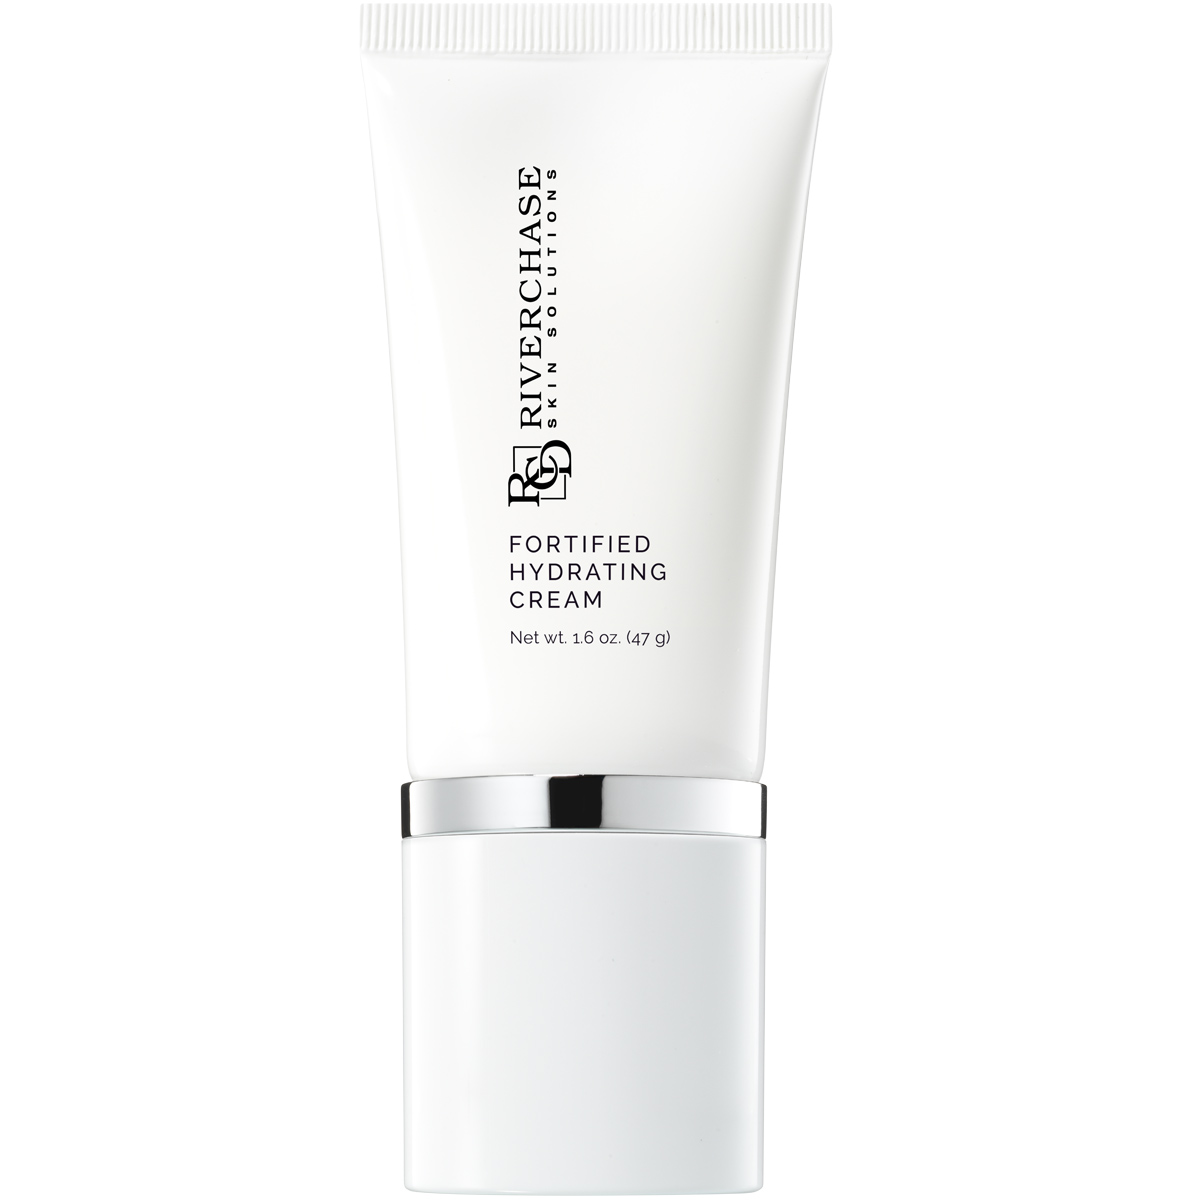 Fortified Hydrating Cream